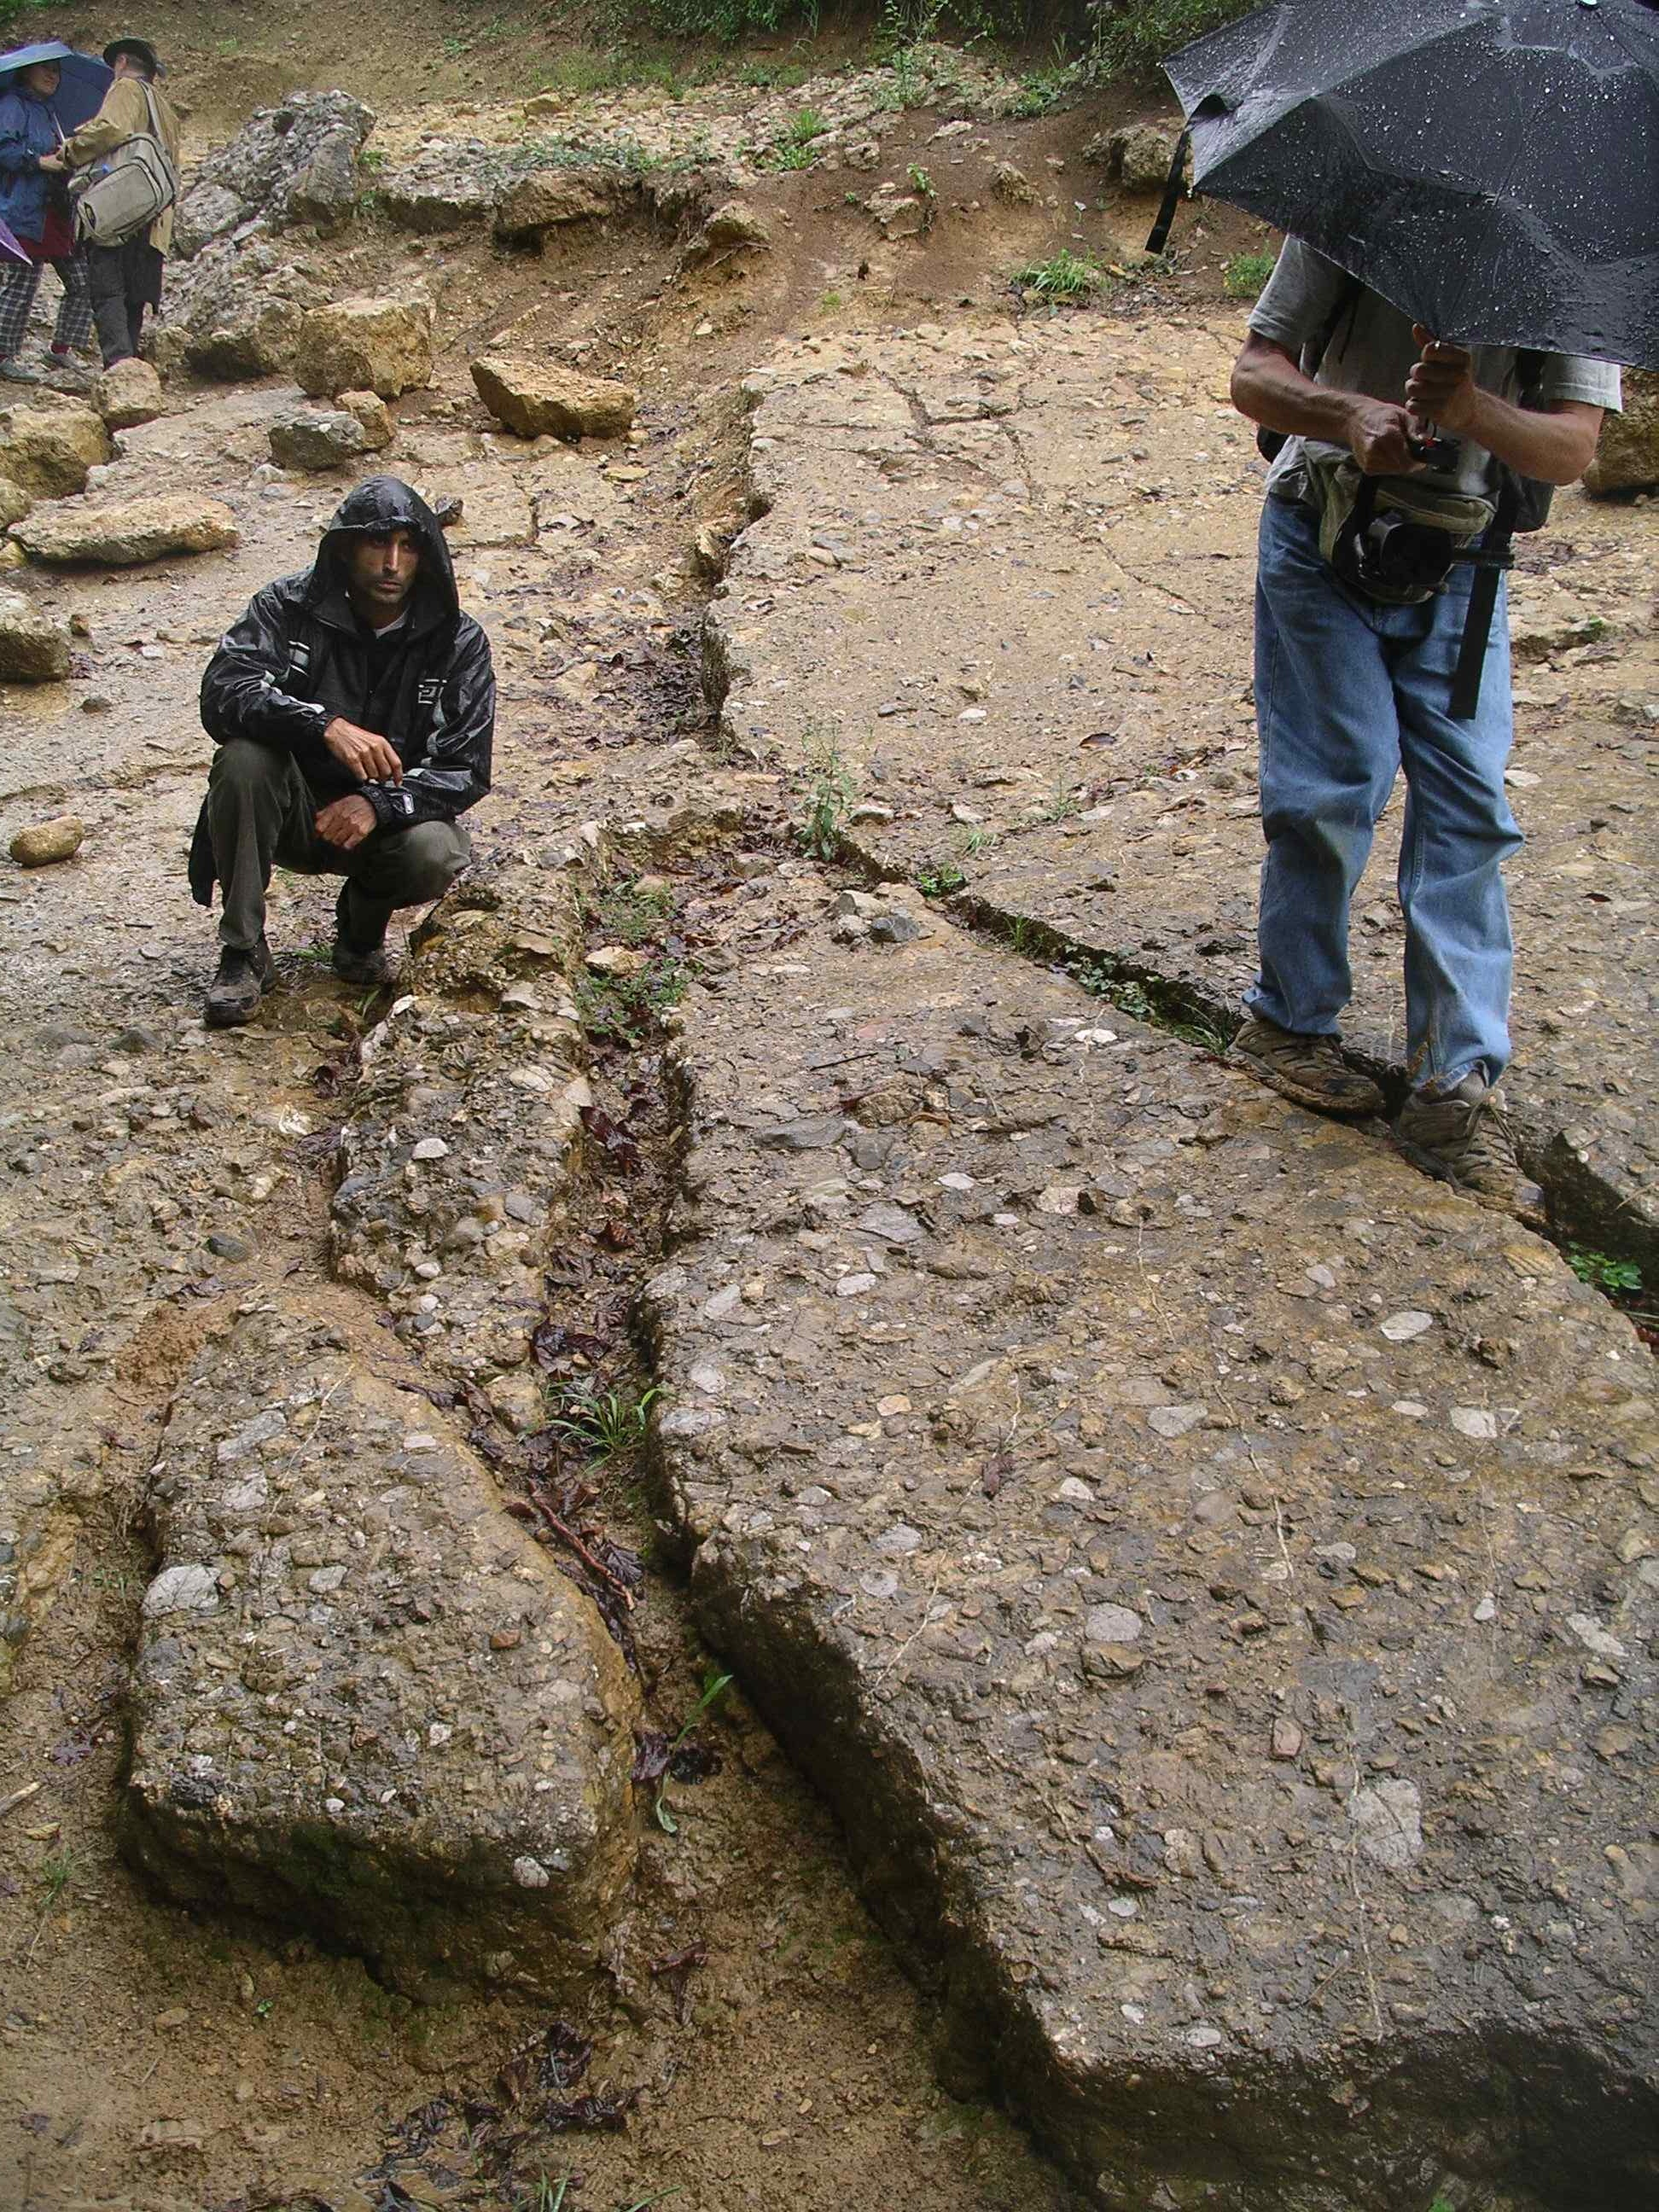 The Bosnian Pyramid Complex: Signs of Technically Advanced